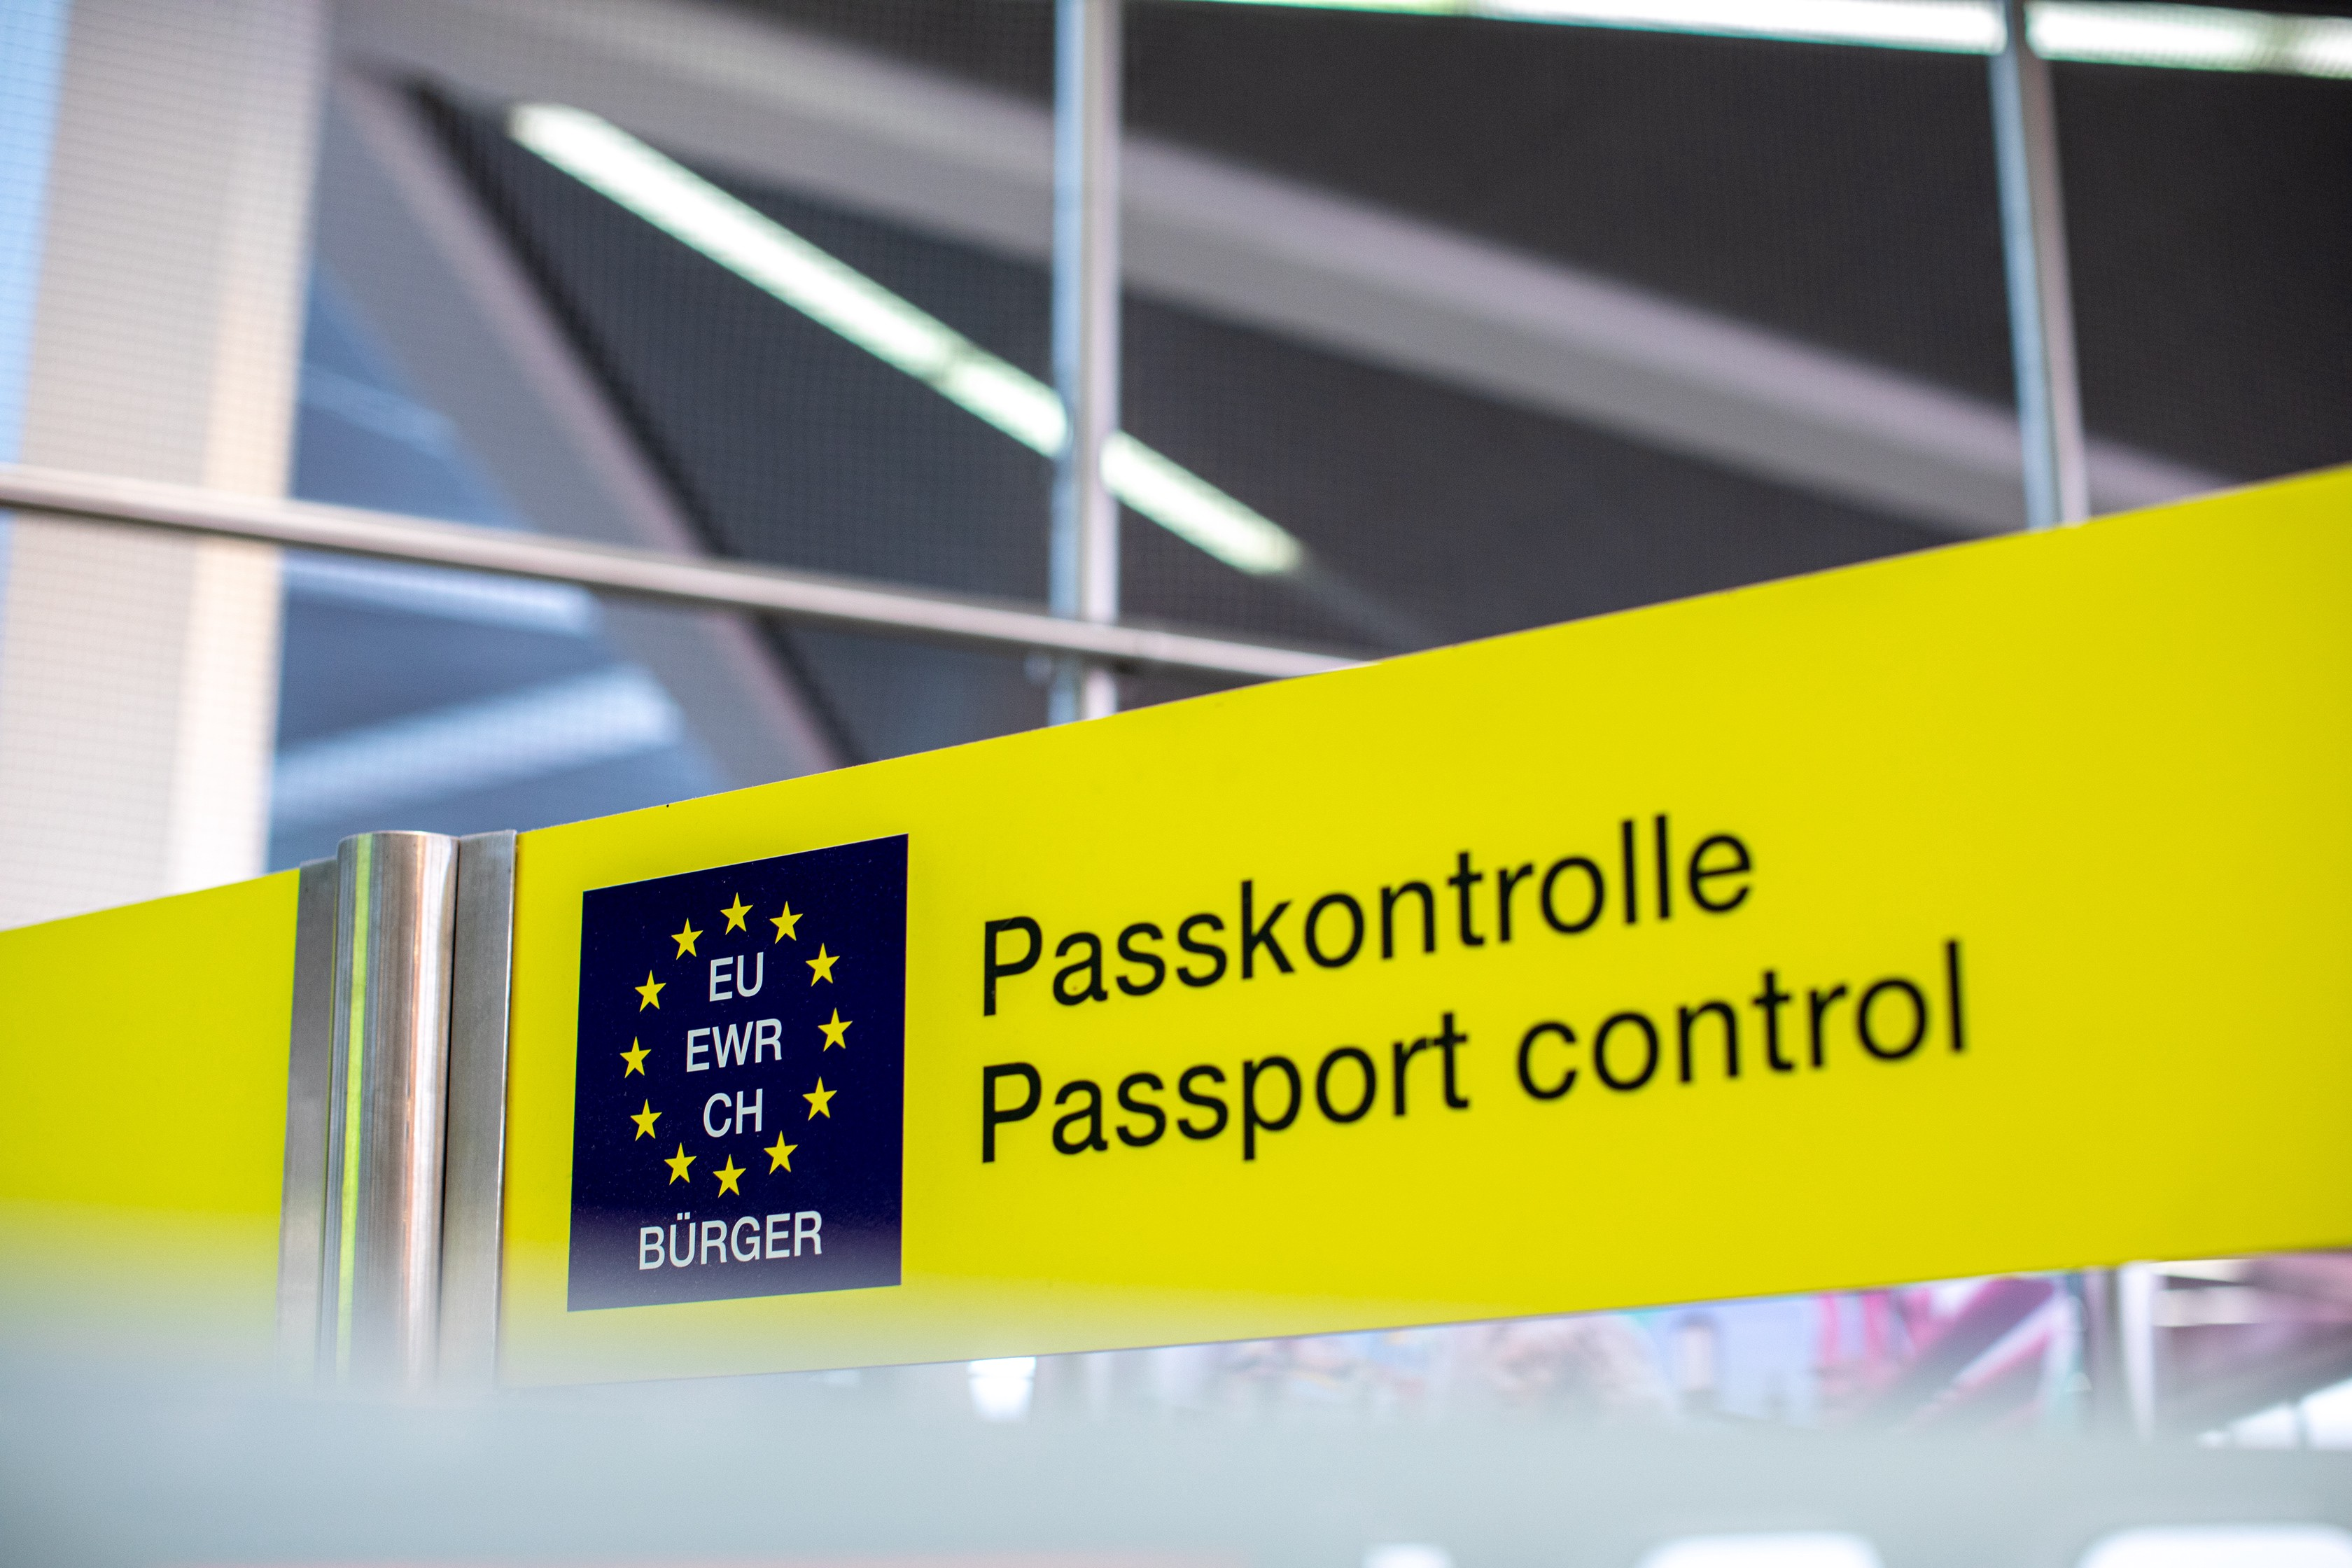 Artificial Intelligence Systems In Airports Passport Control To Curb Criminals